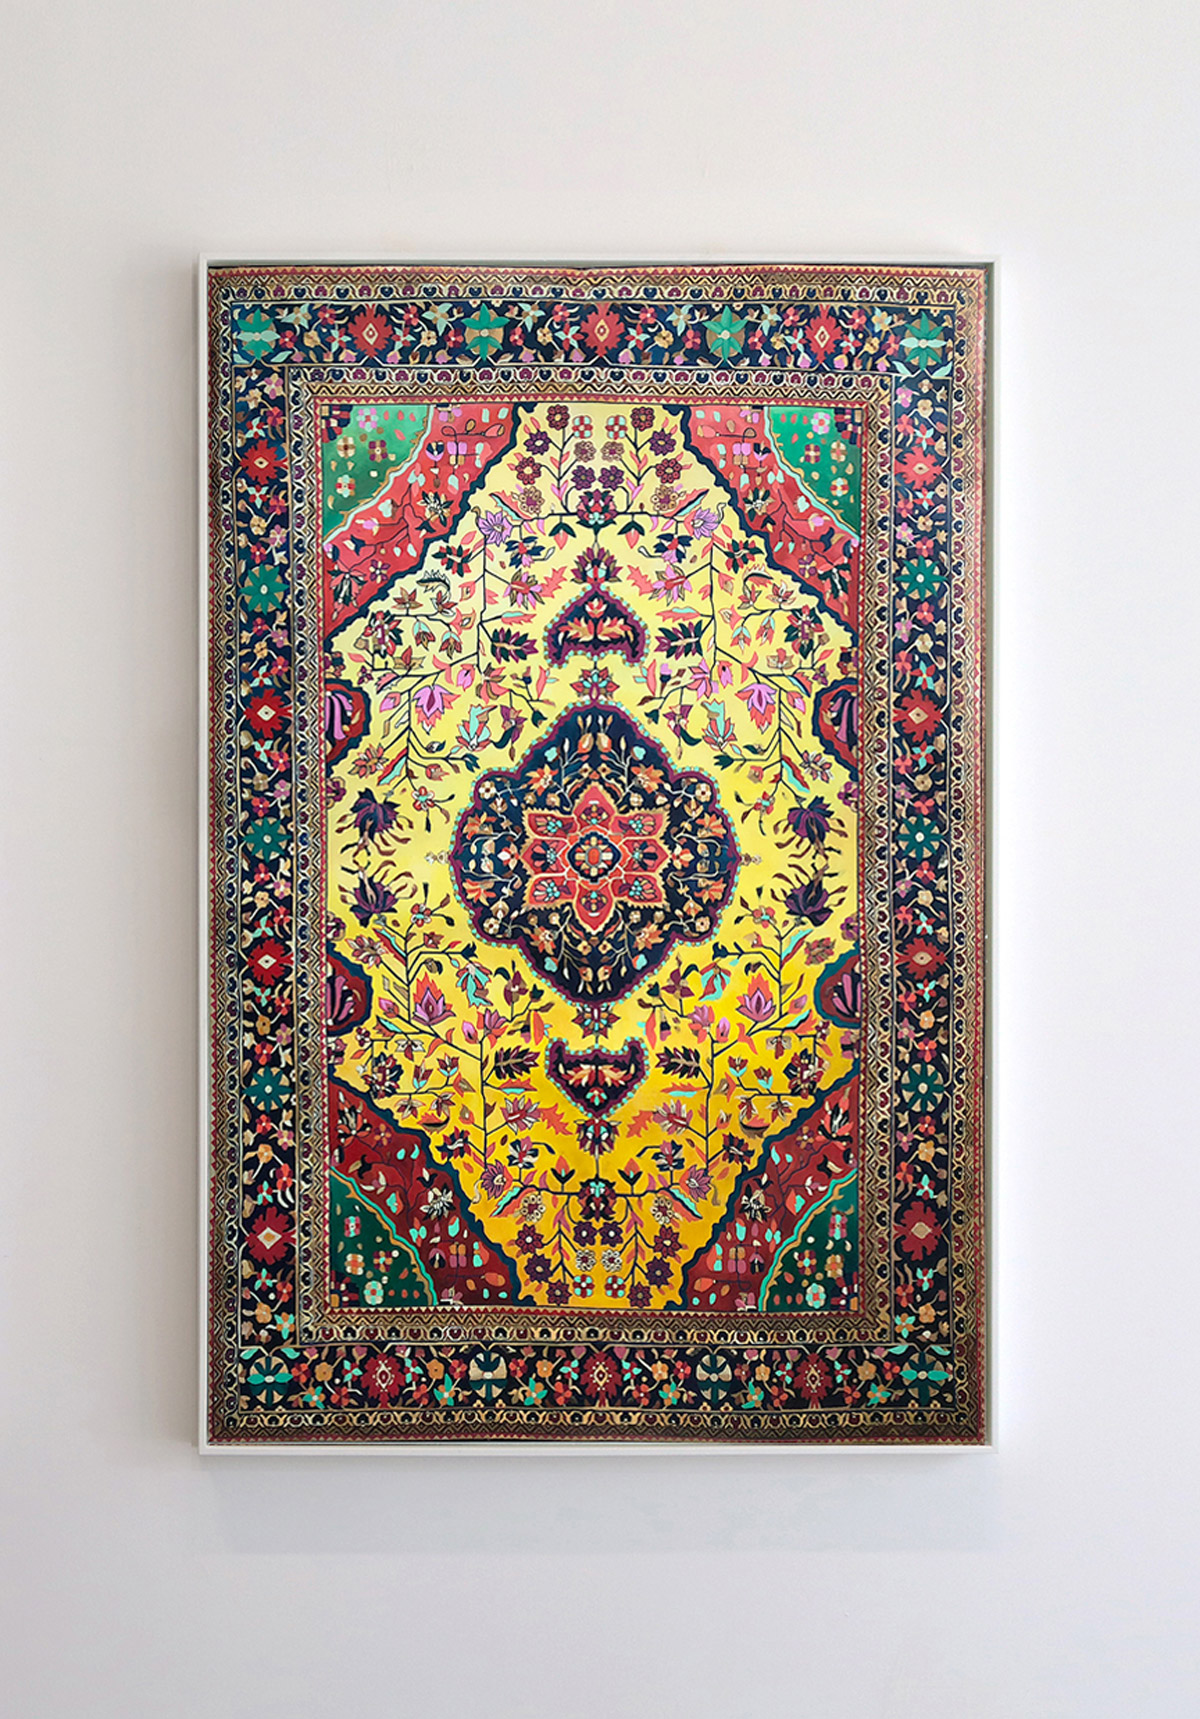 Obsessively Detailed Rug Paintings By Jason Seife